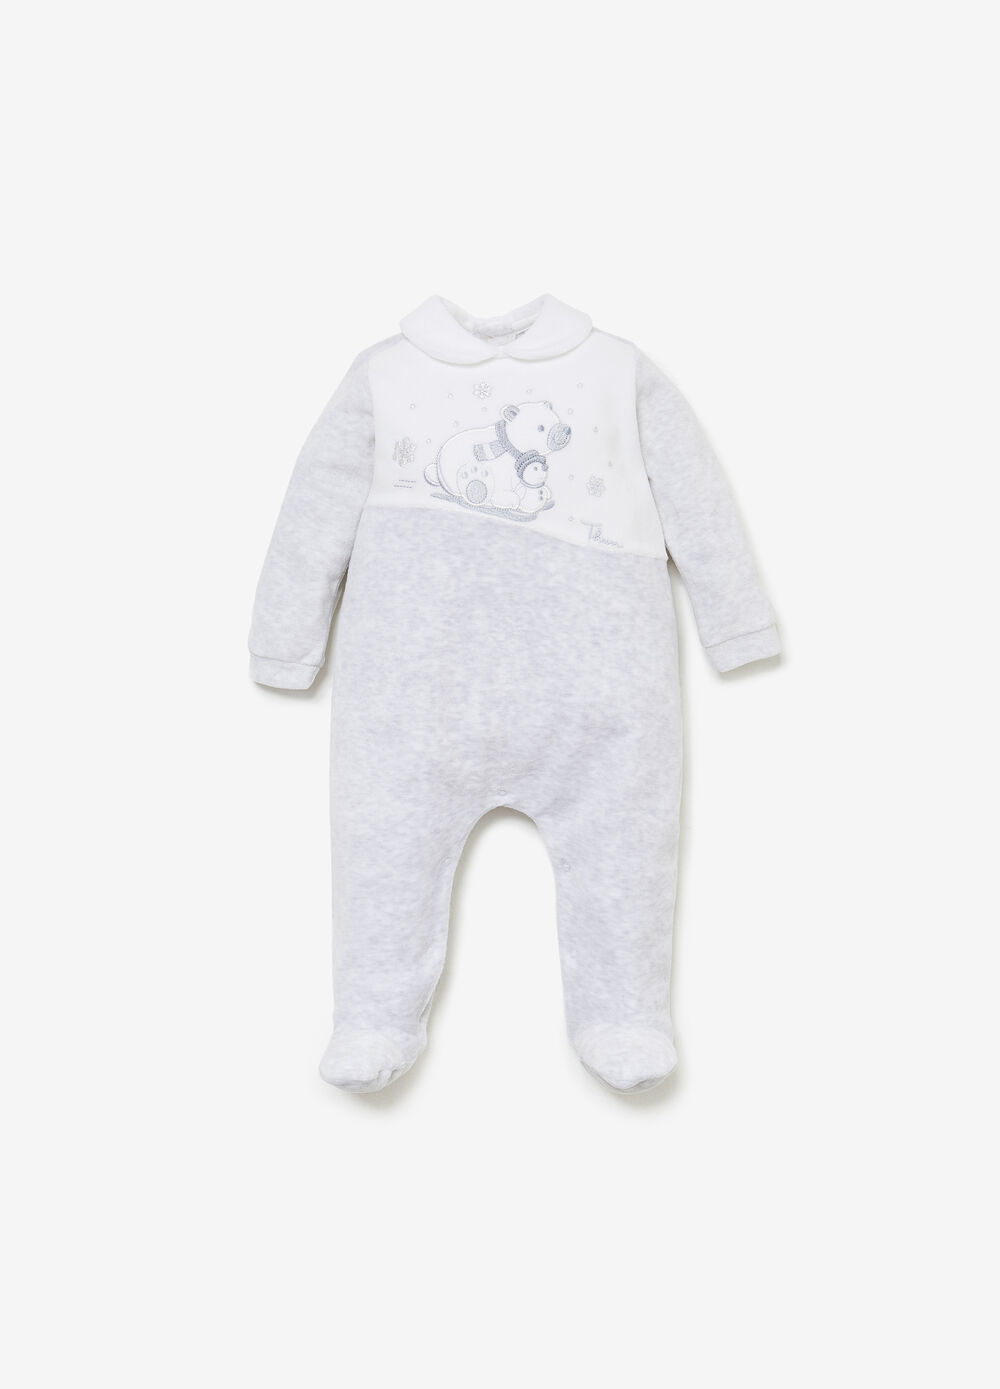 THUN two-tone romper suit with polar bear patch